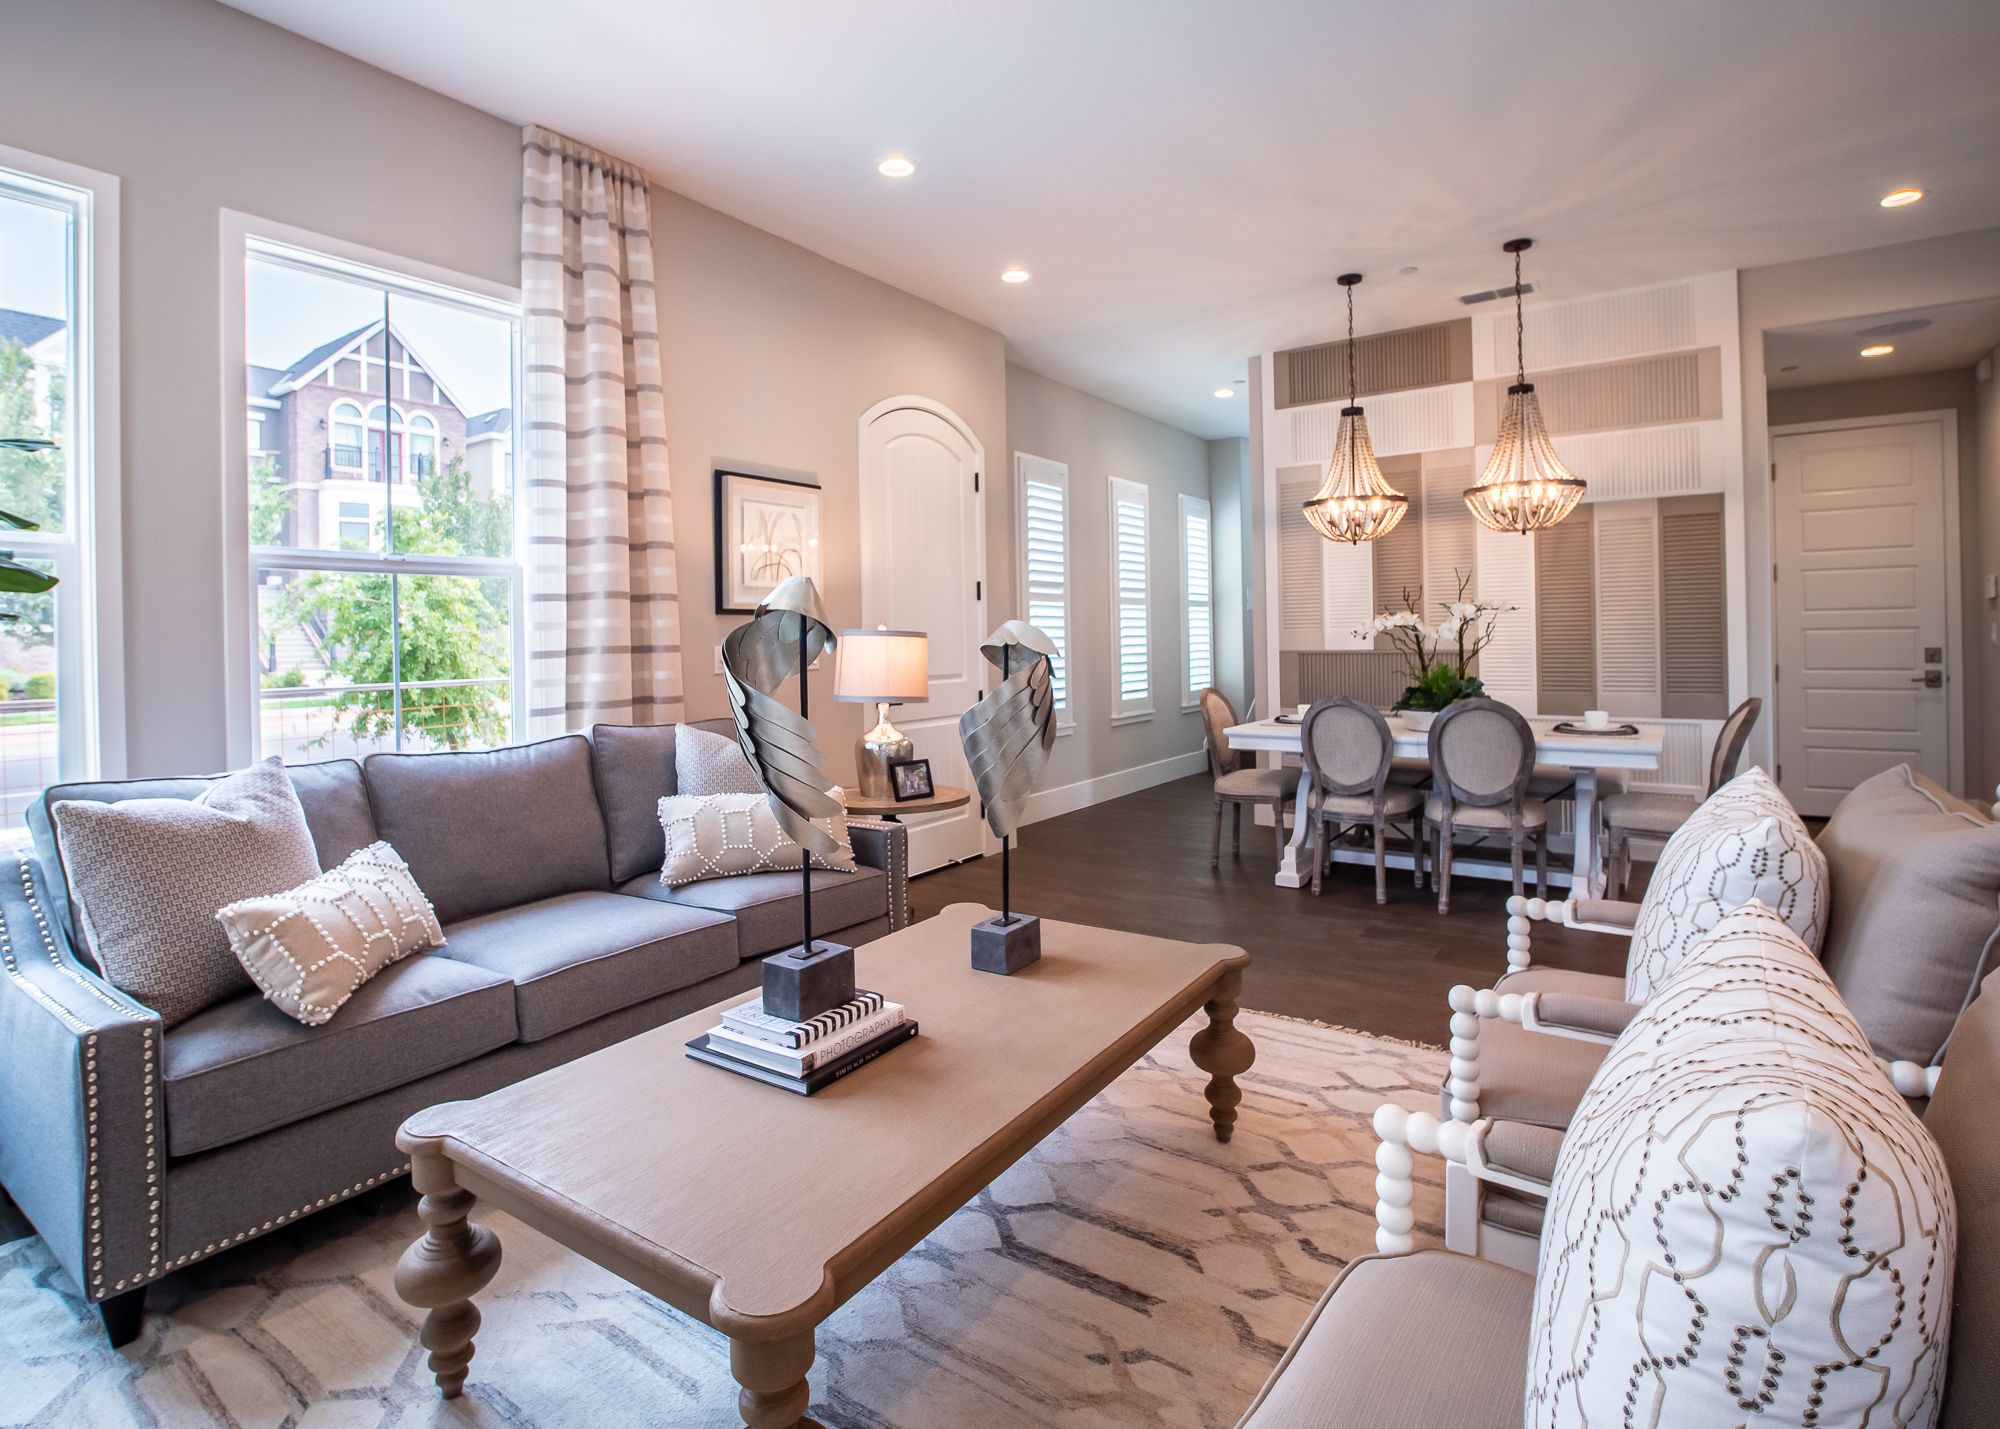 Living Area featured in the Village Courts Collection Residence 12 By BlackPine Communites